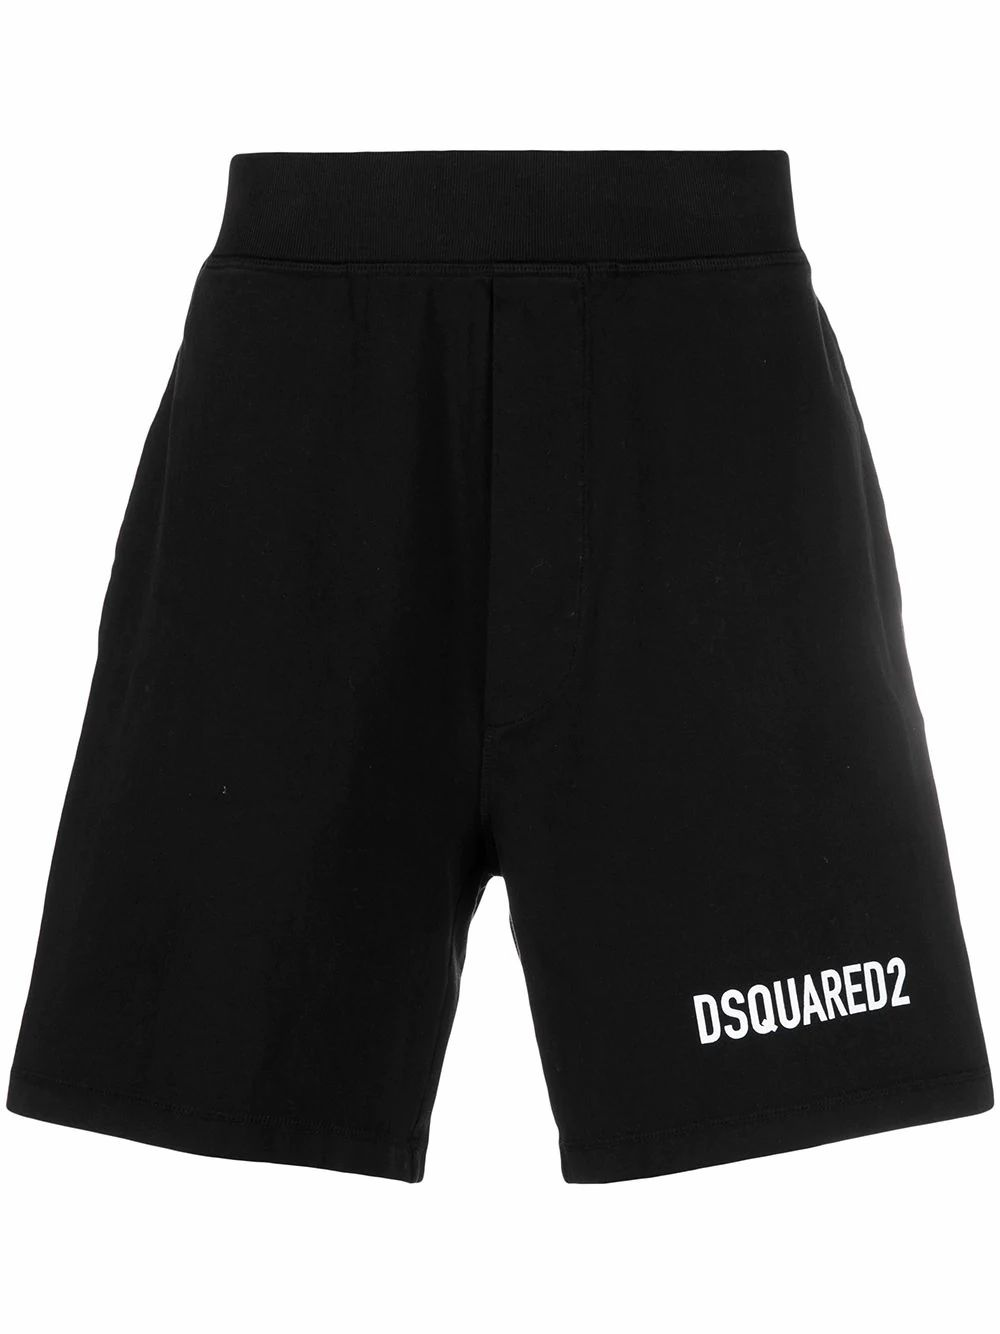 Dsquared2 DSQUARED2 MEN'S S74MU0645S23851900 BLACK COTTON SHORTS